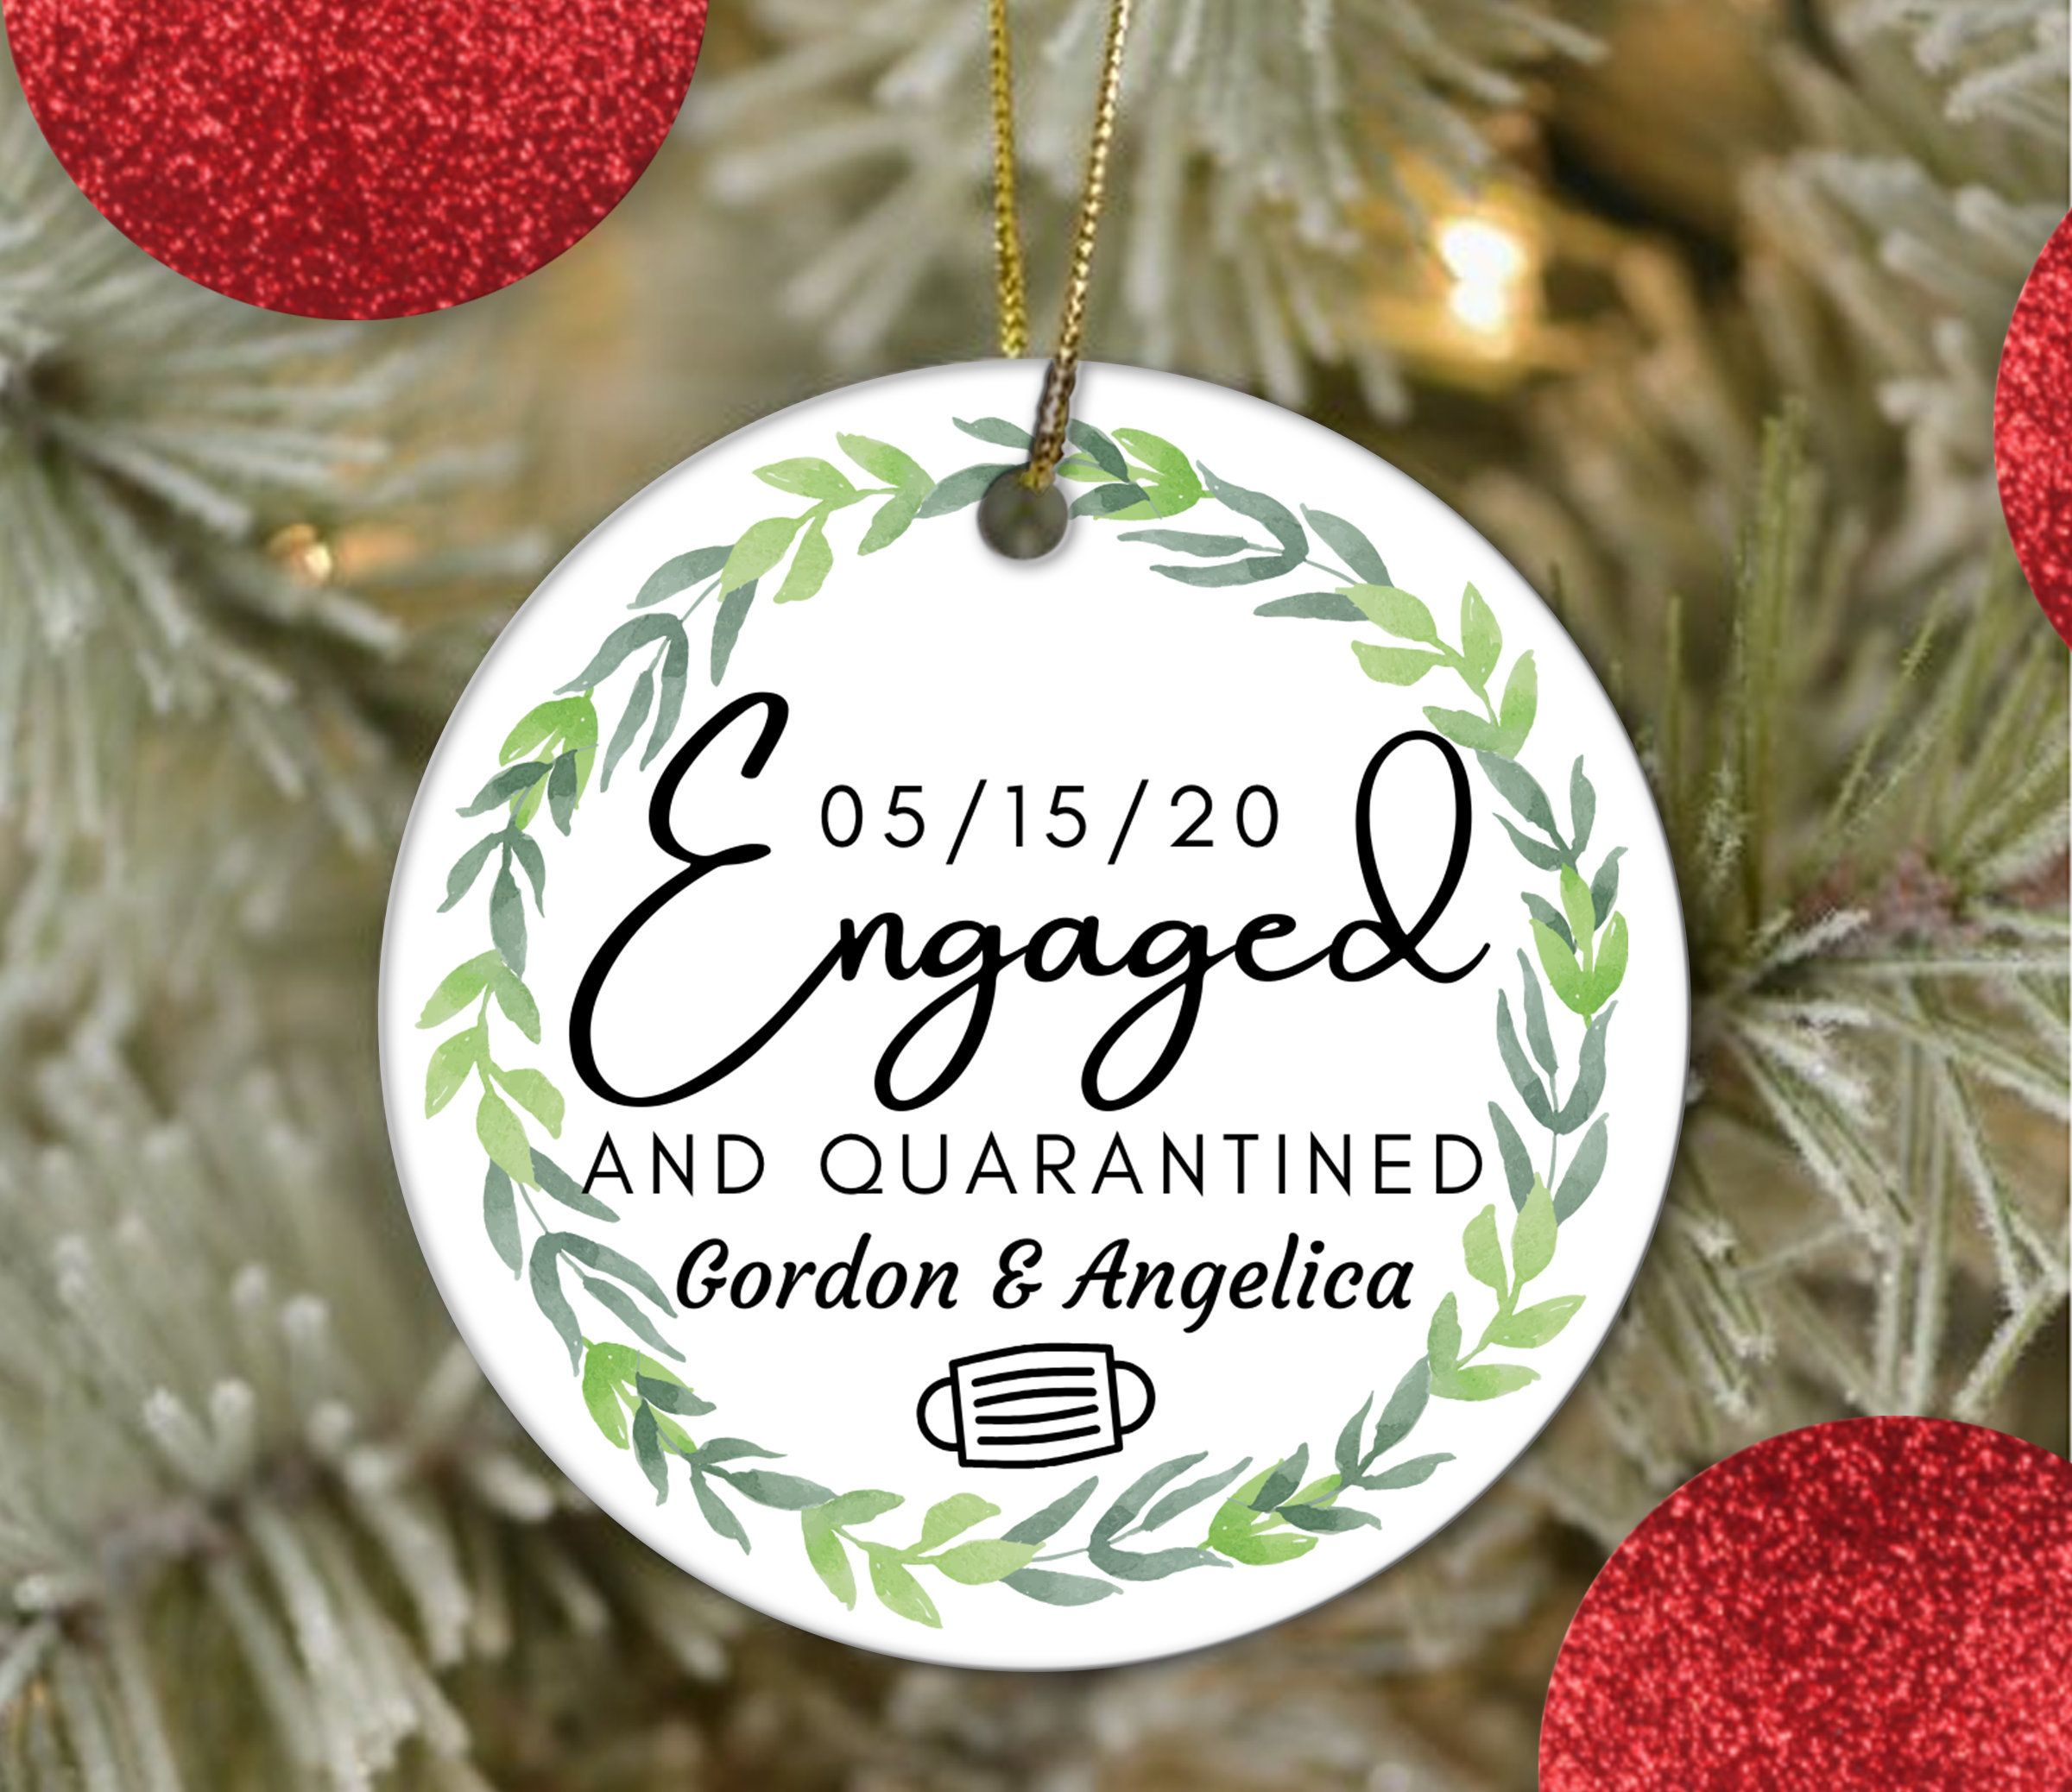 Engagement Ornament 2020 Engaged And Quarantined Etsy In 2020 Engagement Ornaments Christmas Ornaments To Make Christmas Decorations To Make